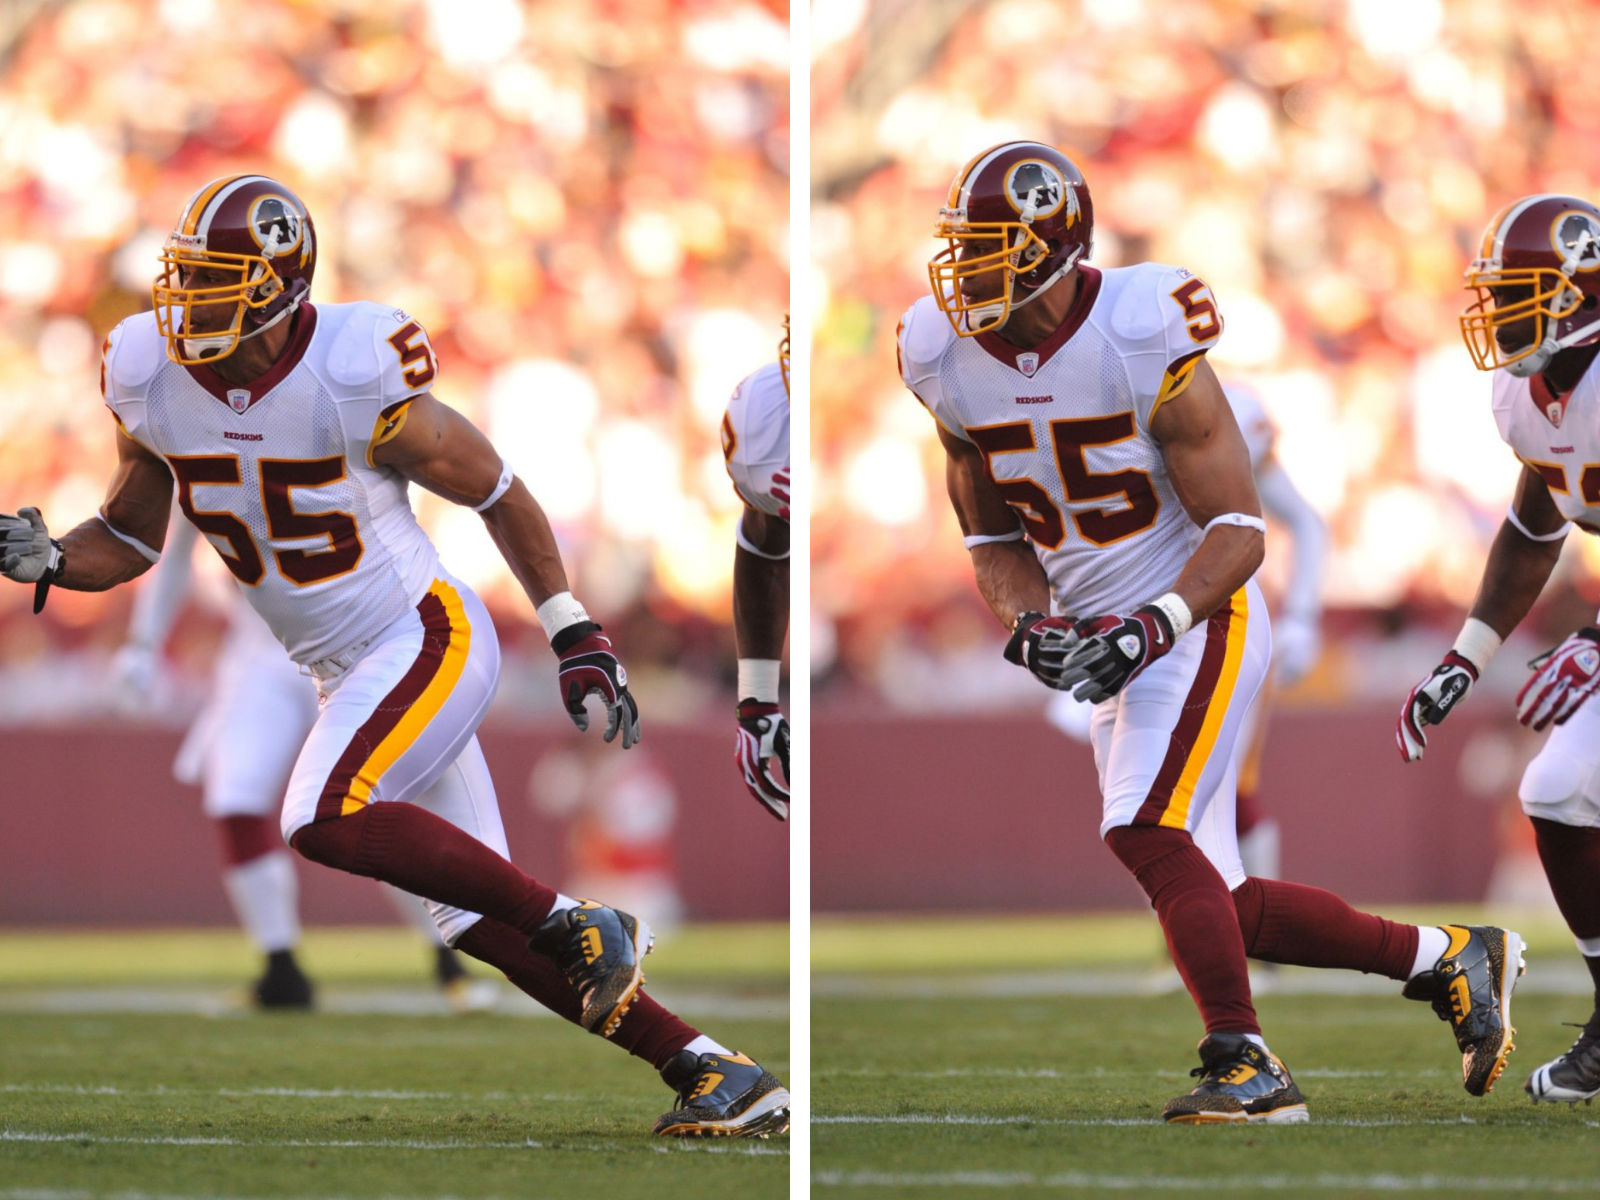 Jason Taylor Wearing Air Jordan III 3 Redskins PE Cleats (3)